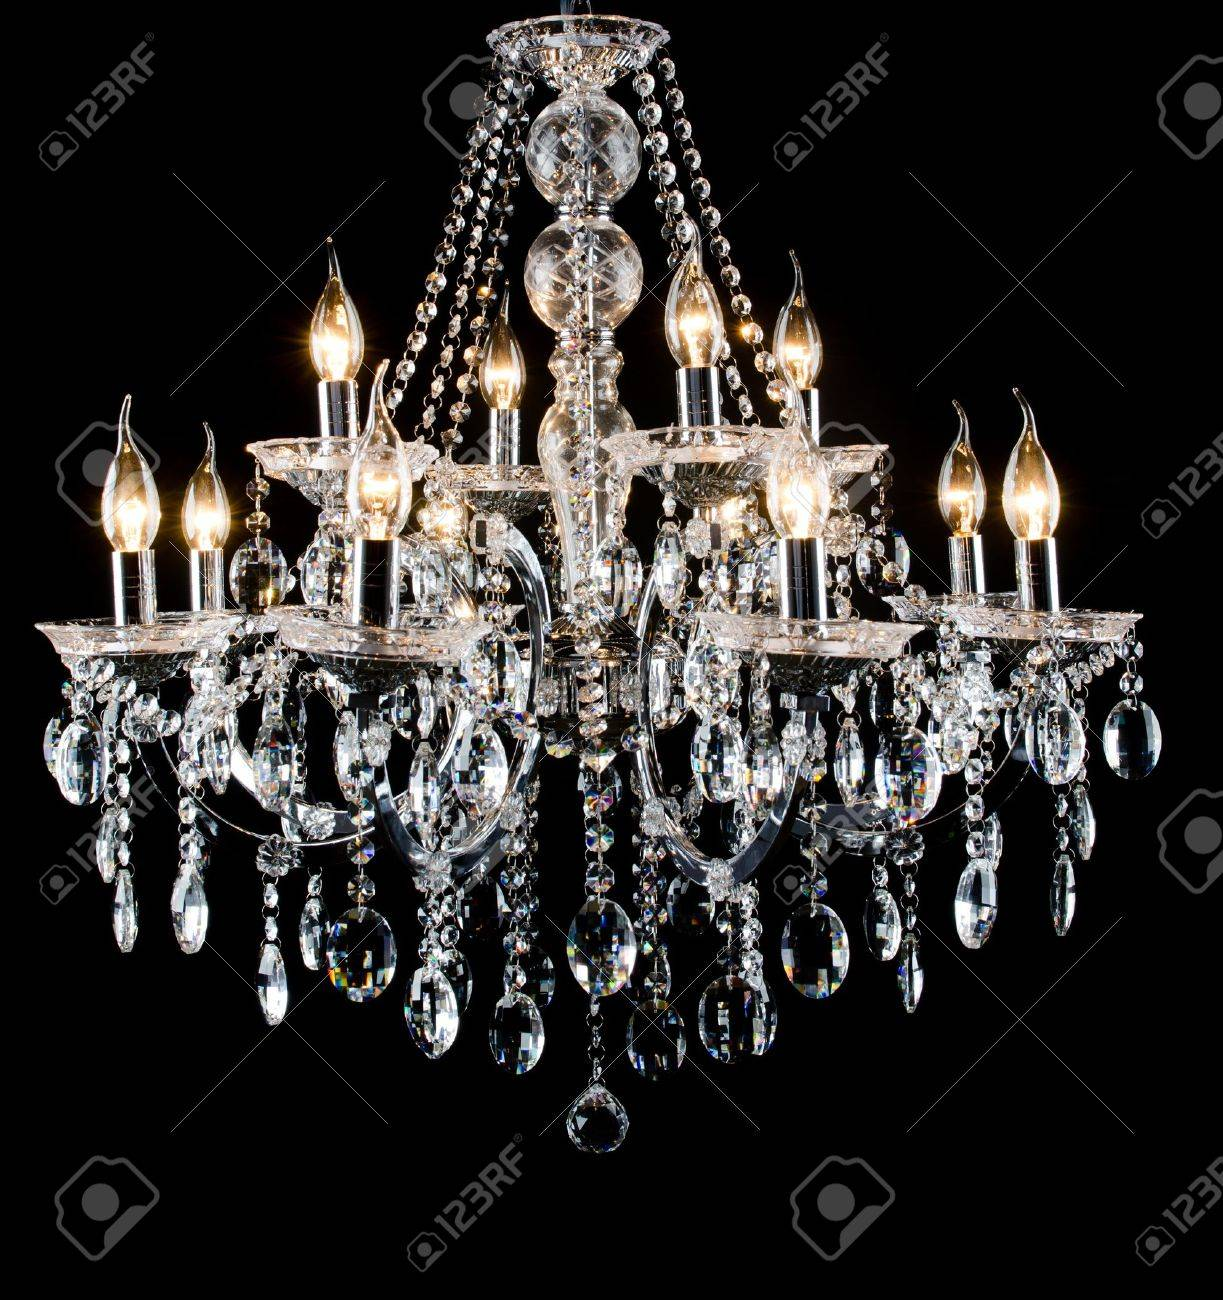 Contemporary glass chandelier - 16123686